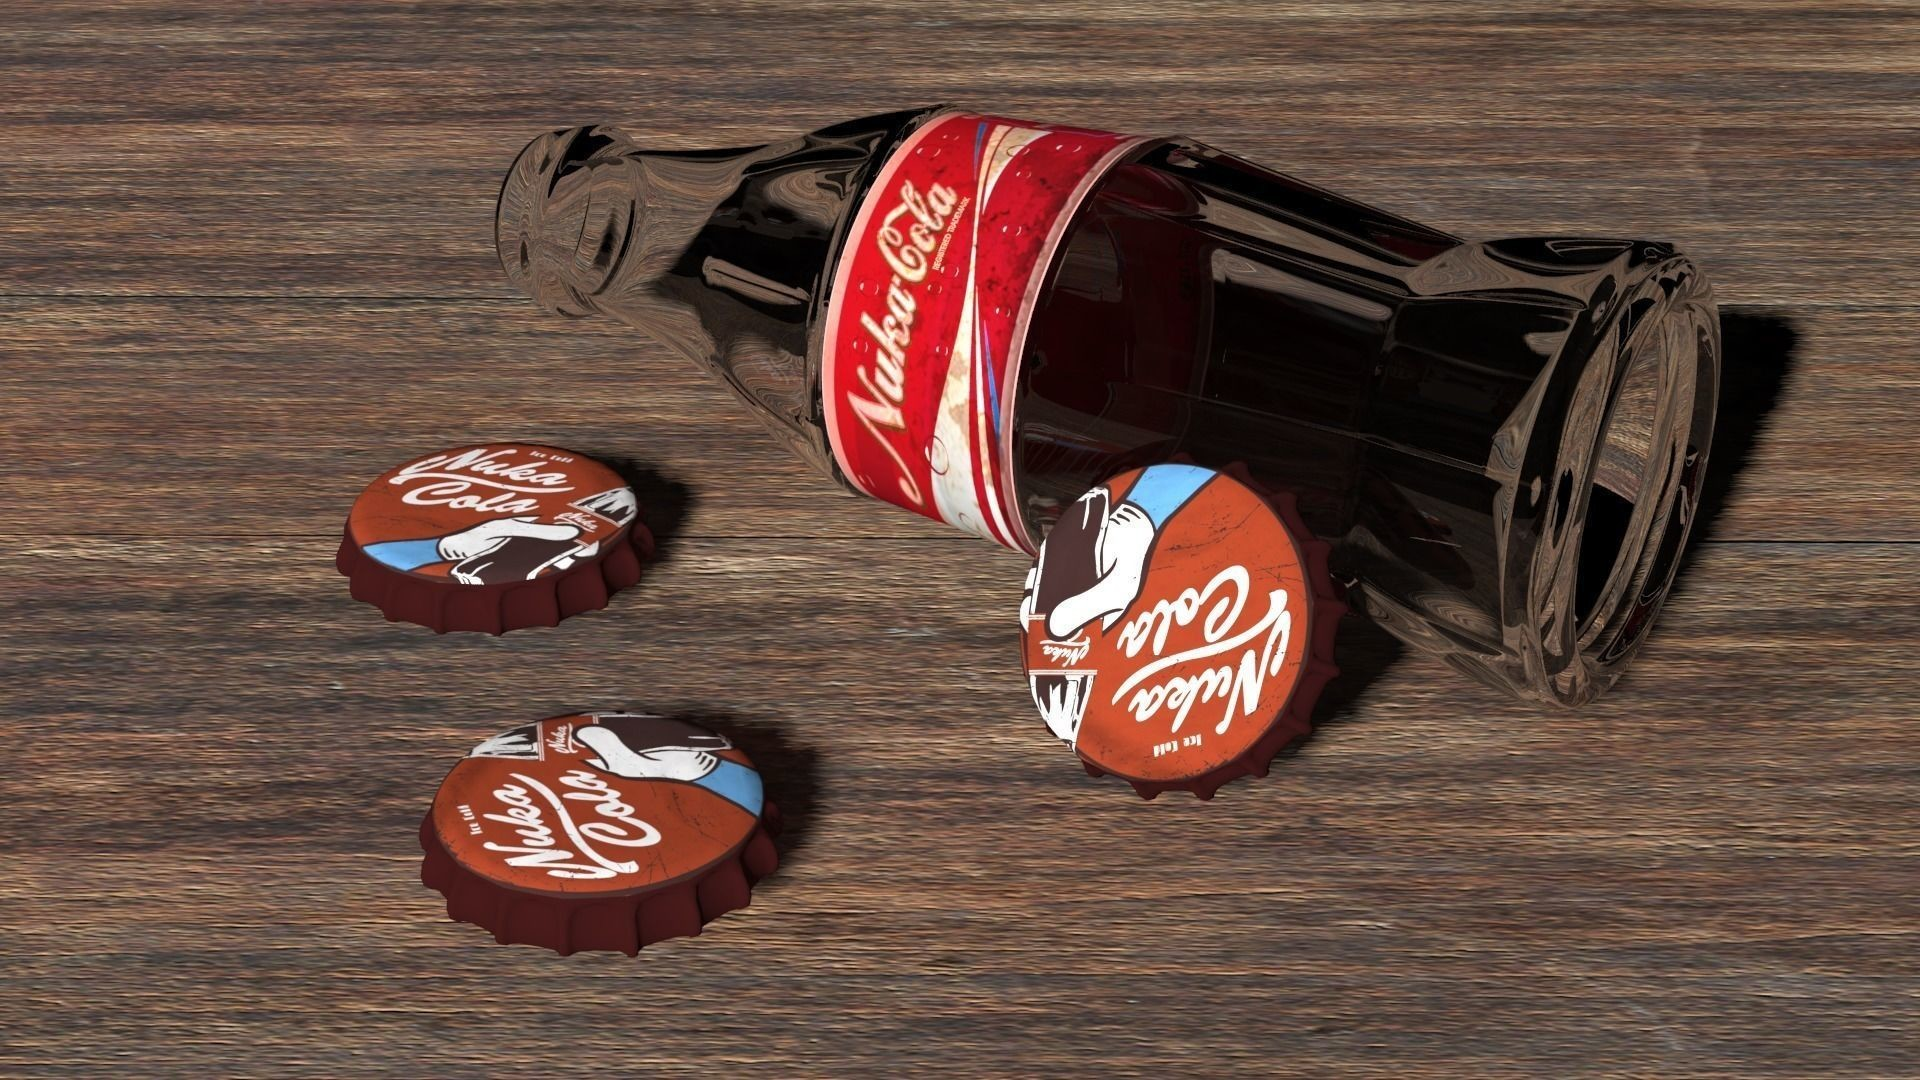 Res: 1920x1080, bottle and caps from under a nuka-cola 3d model max 1 ...